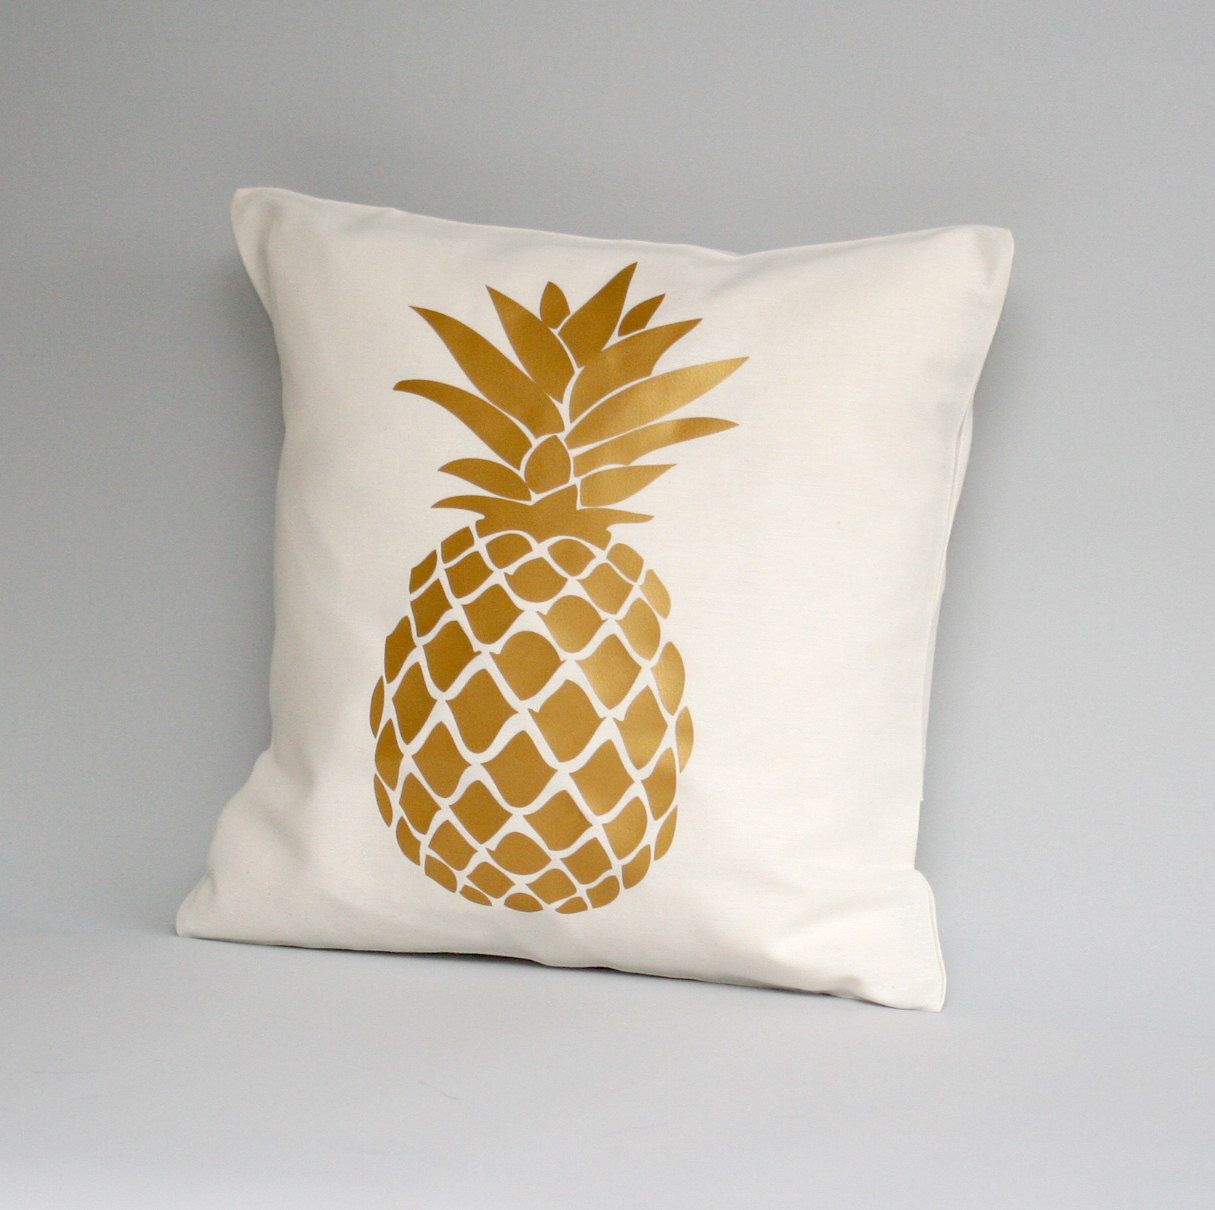 Metallic gold pillow cover - Gold pineapple pillow cover - Throw ...